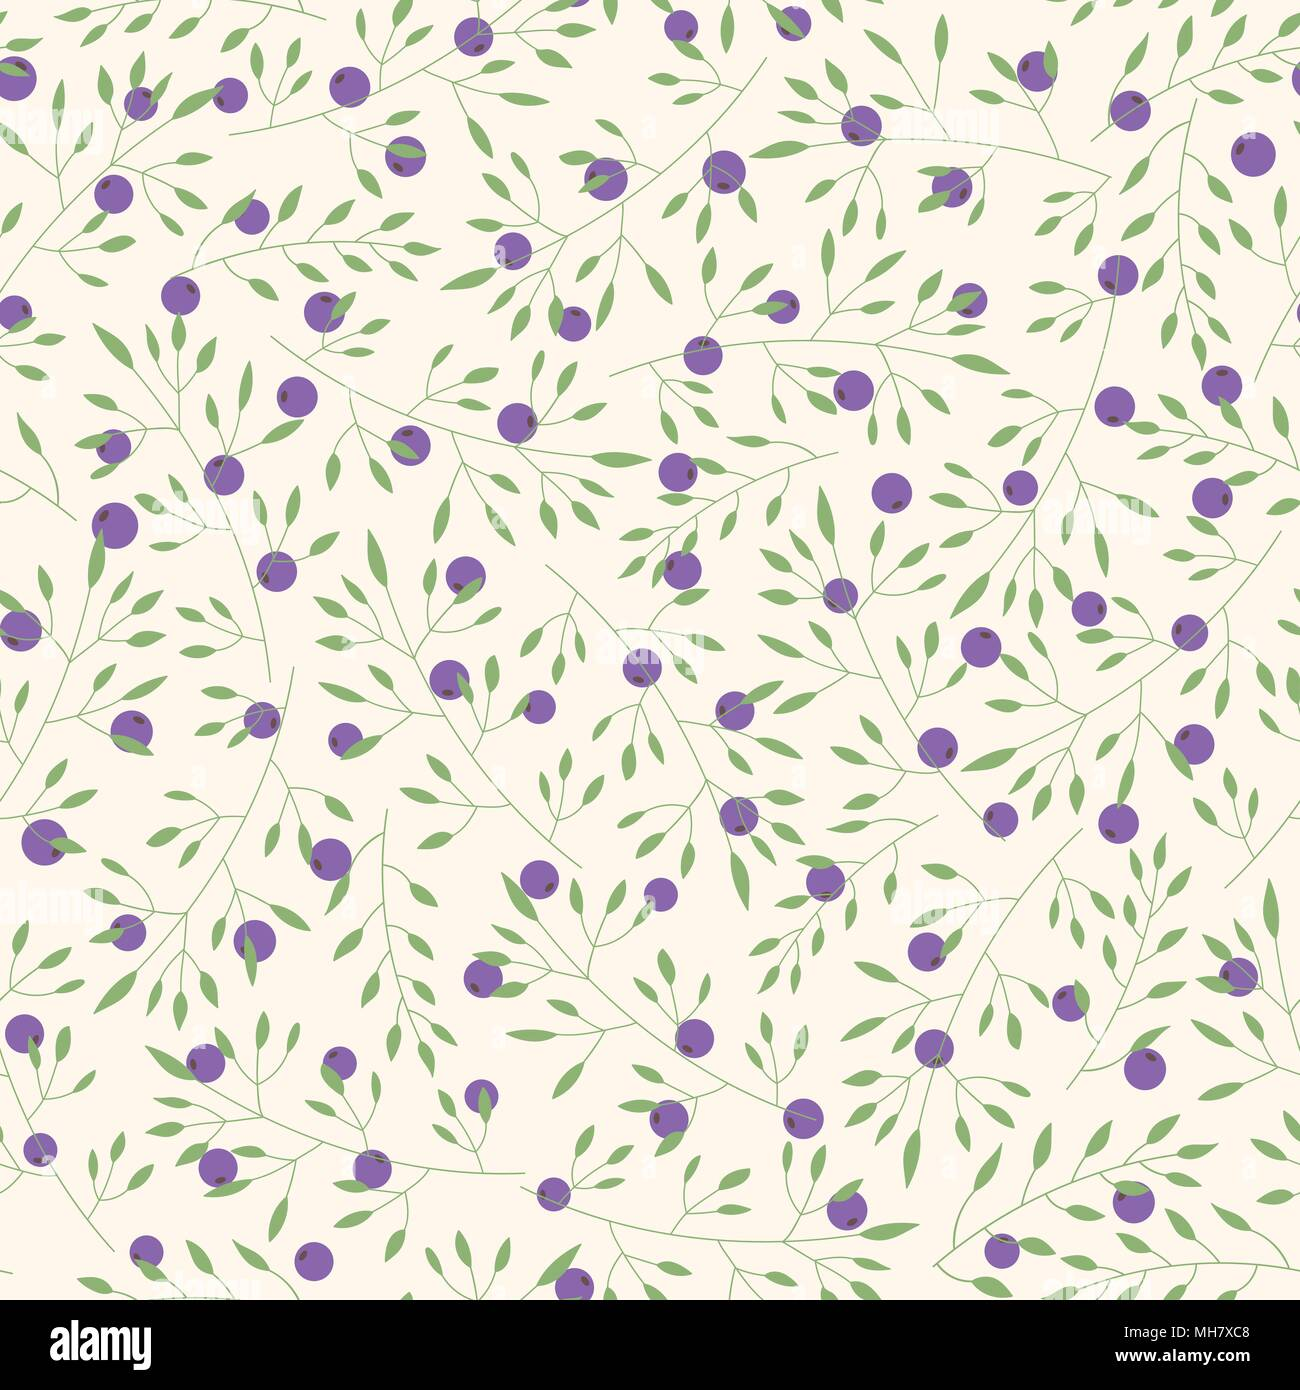 Hand drawn vector floral seamless pattern with branches, leaves and